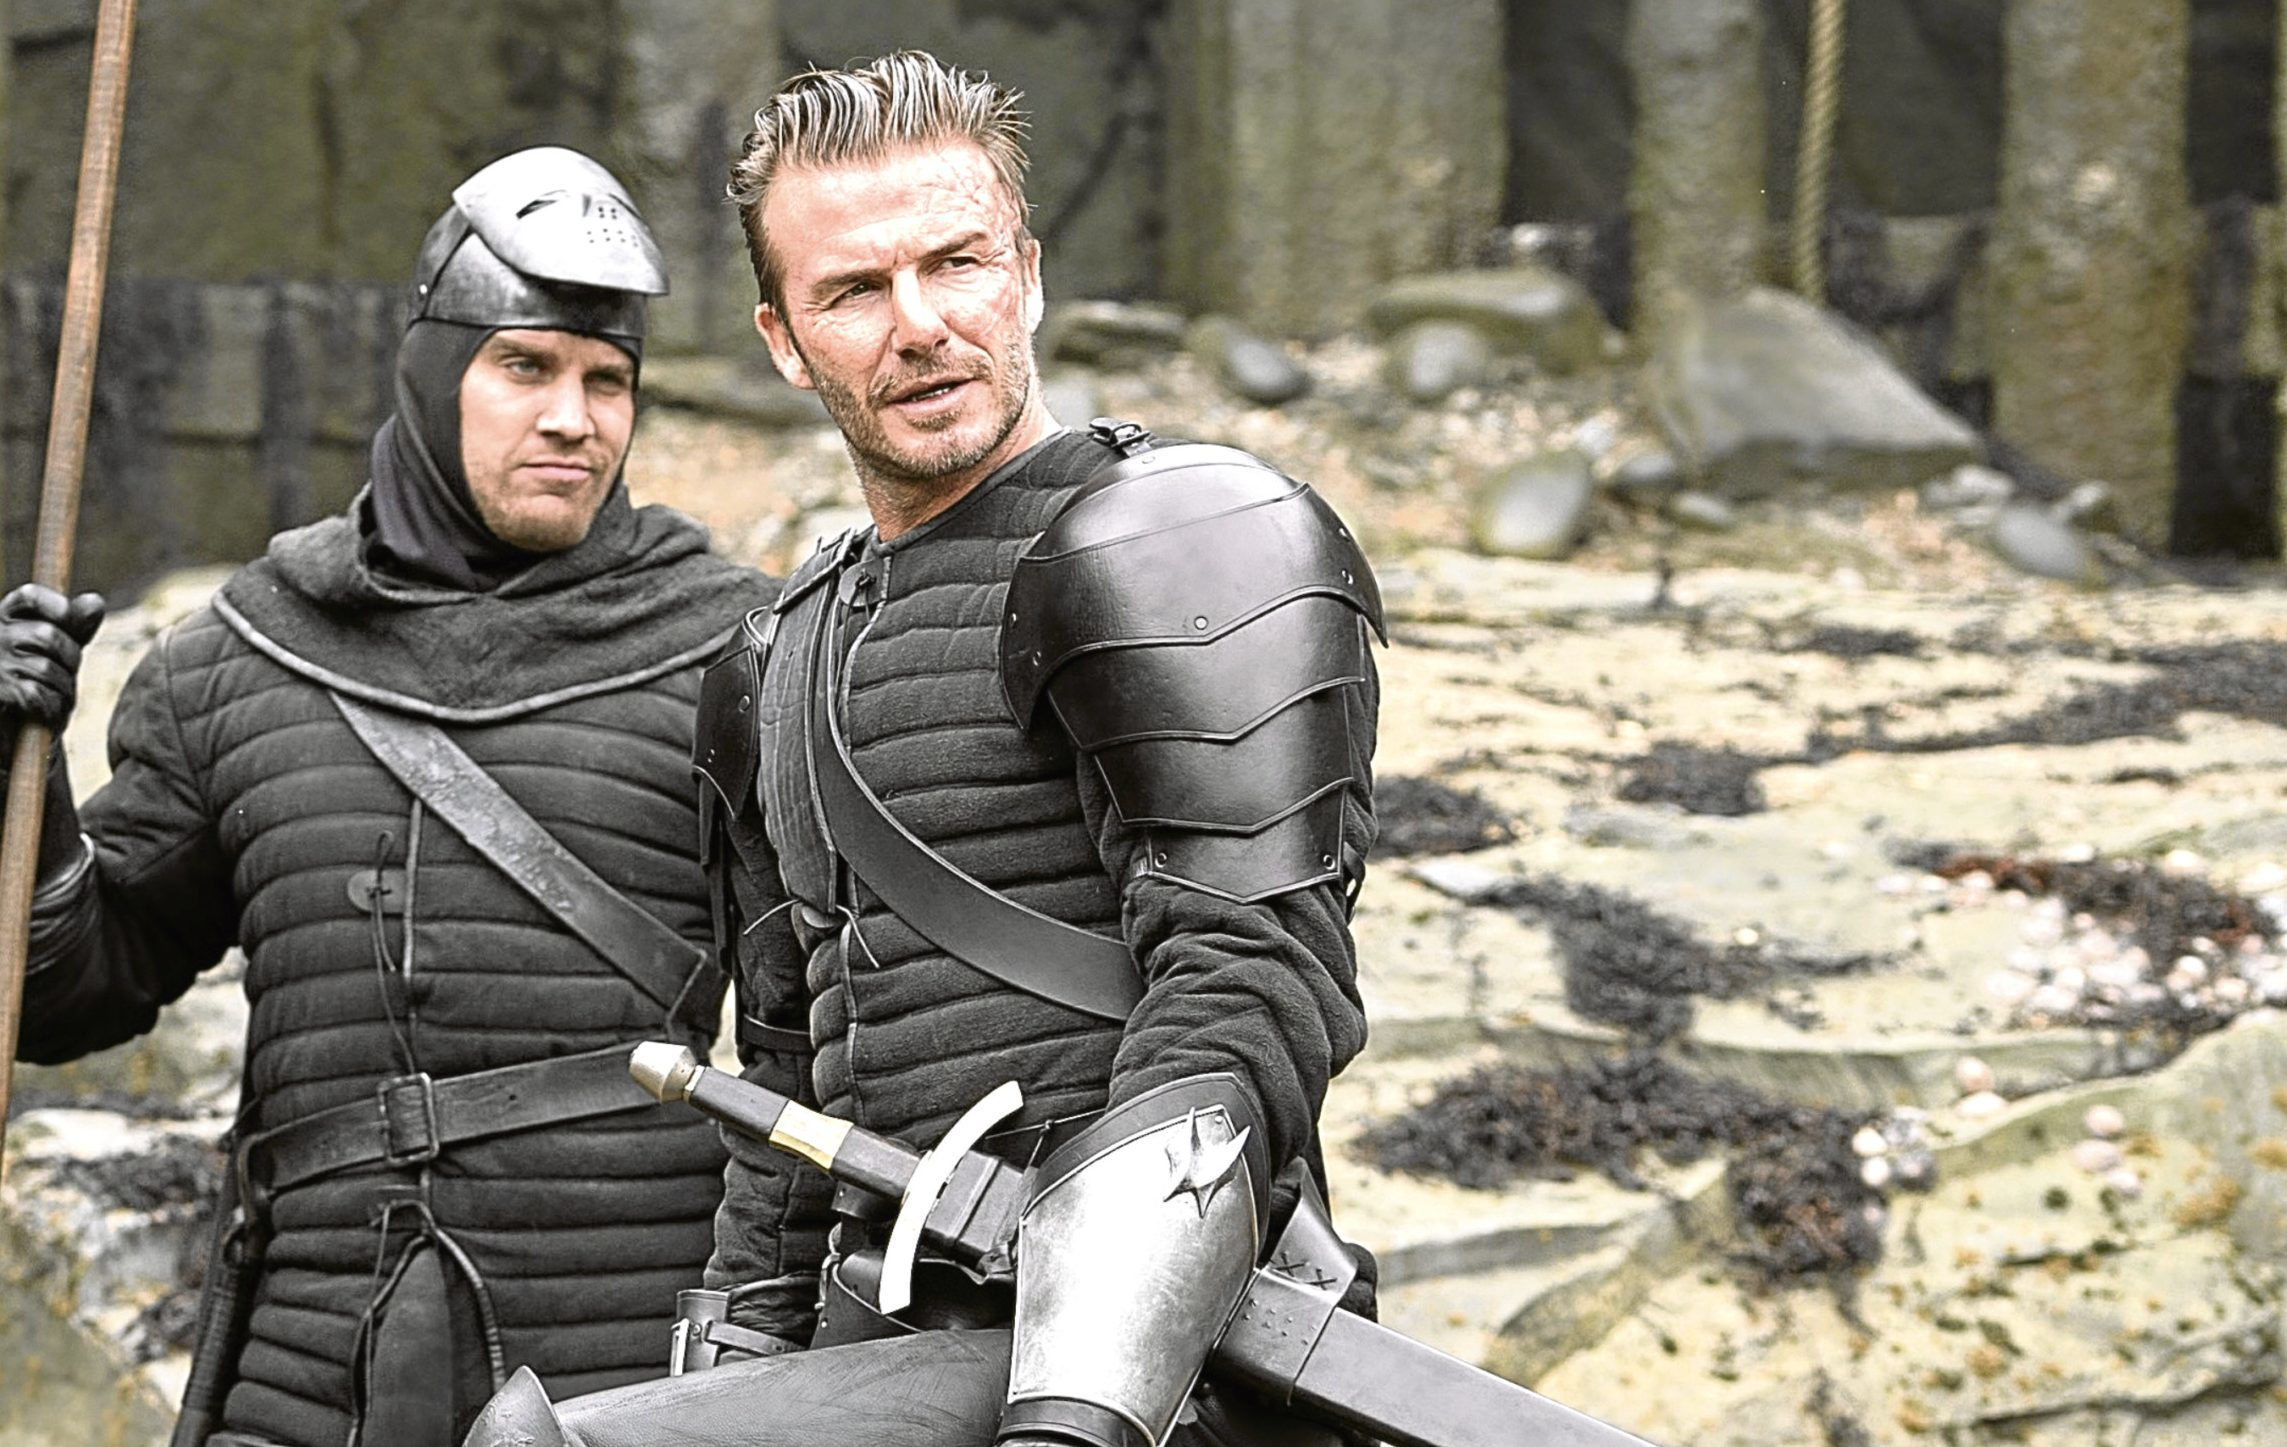 David Beckham's cameo in King Arthur: Legend of the Sword  (Allstar/WARNER BROS.)